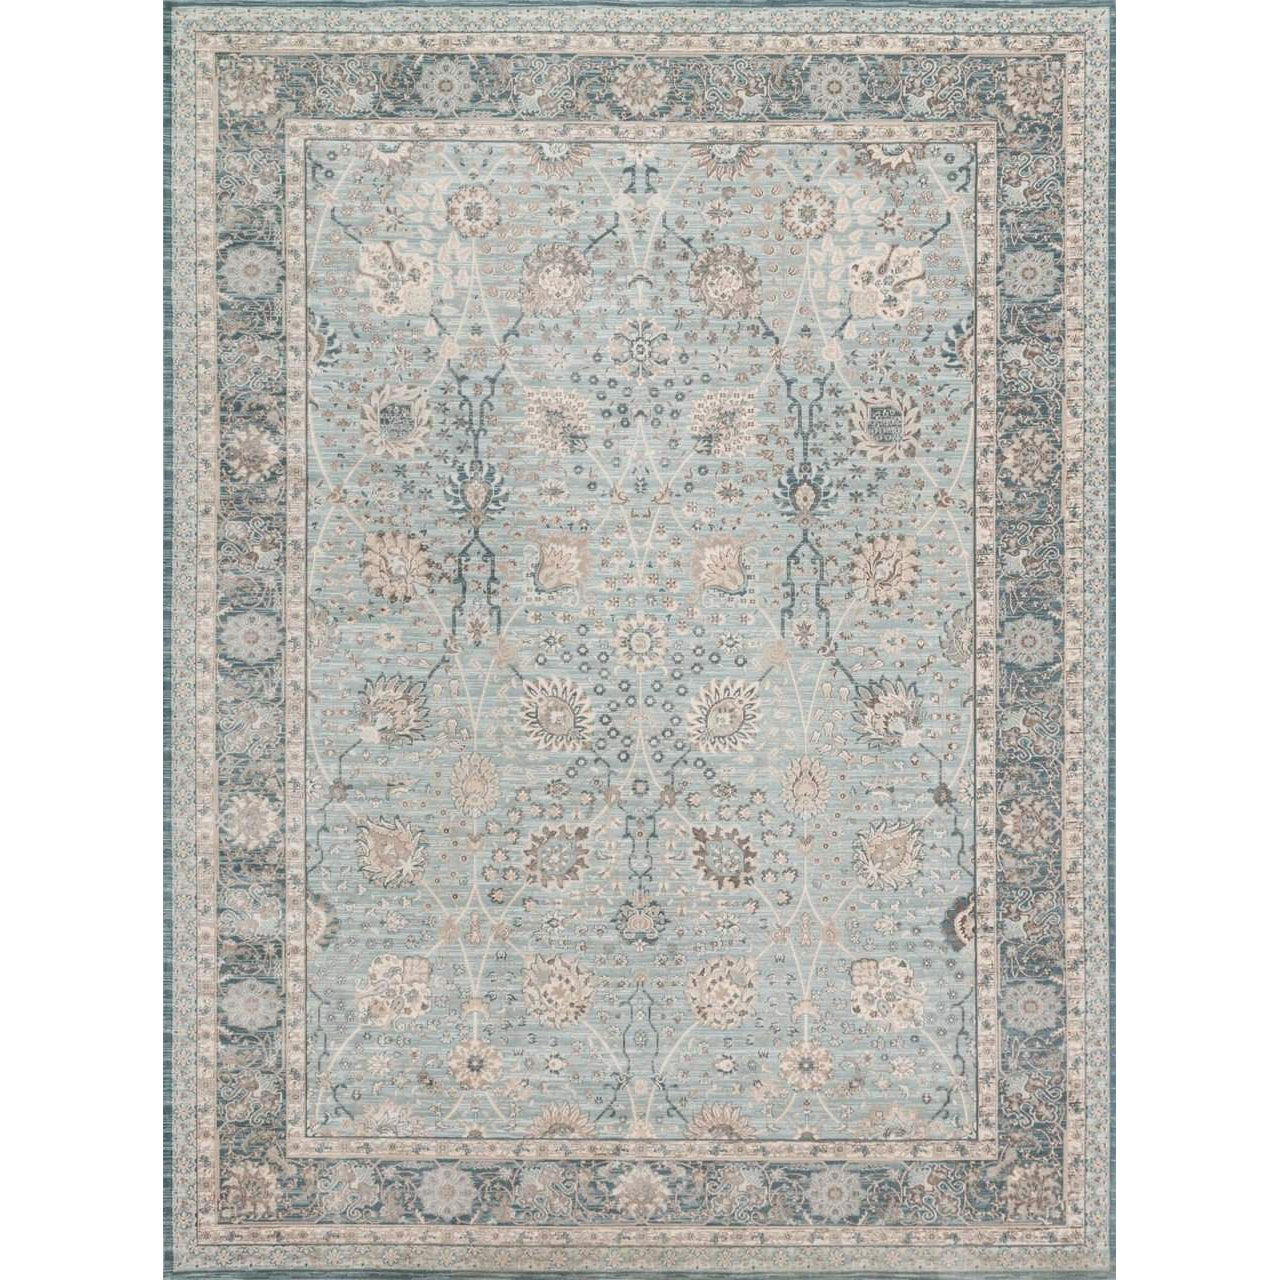 Joanna Gaines Magnolia Home Rug - Ella Rose Collection - Lt Blue / Dk Blue